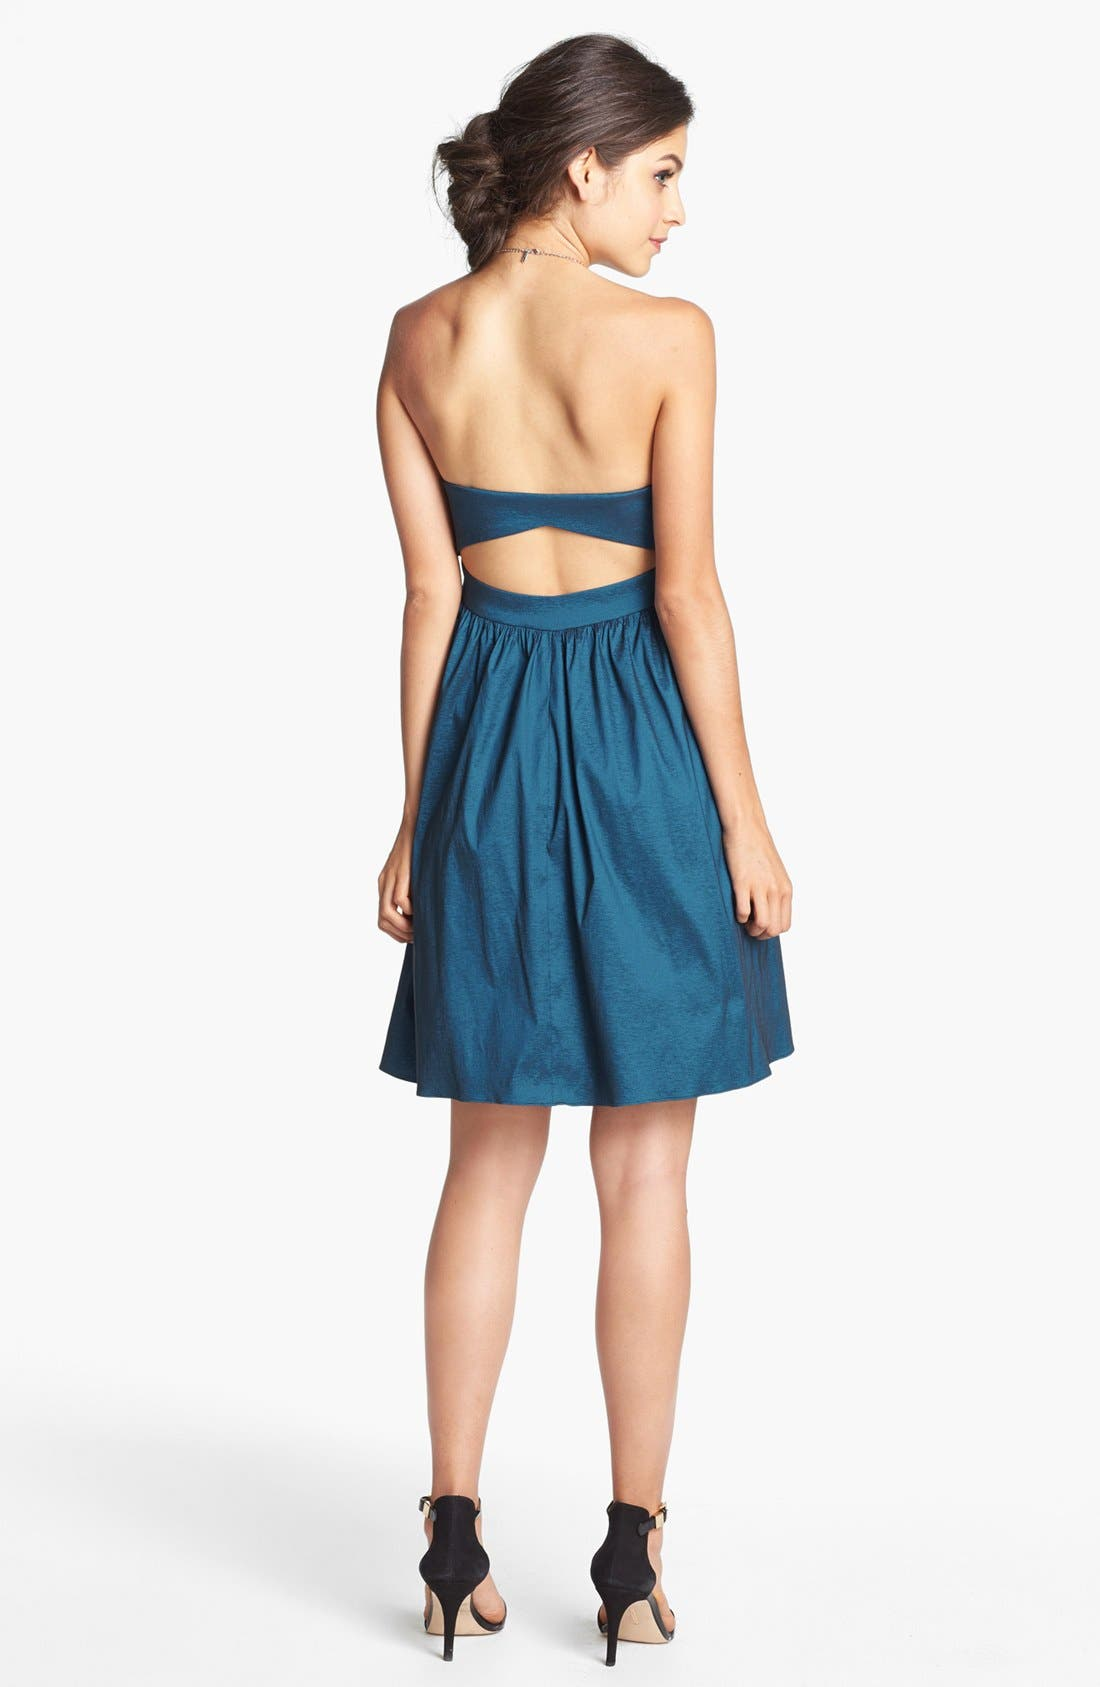 HAILEY BY ADRIANNA PAPELL, Bow Detail Taffeta Fit & Flare Dress, Alternate thumbnail 3, color, 403